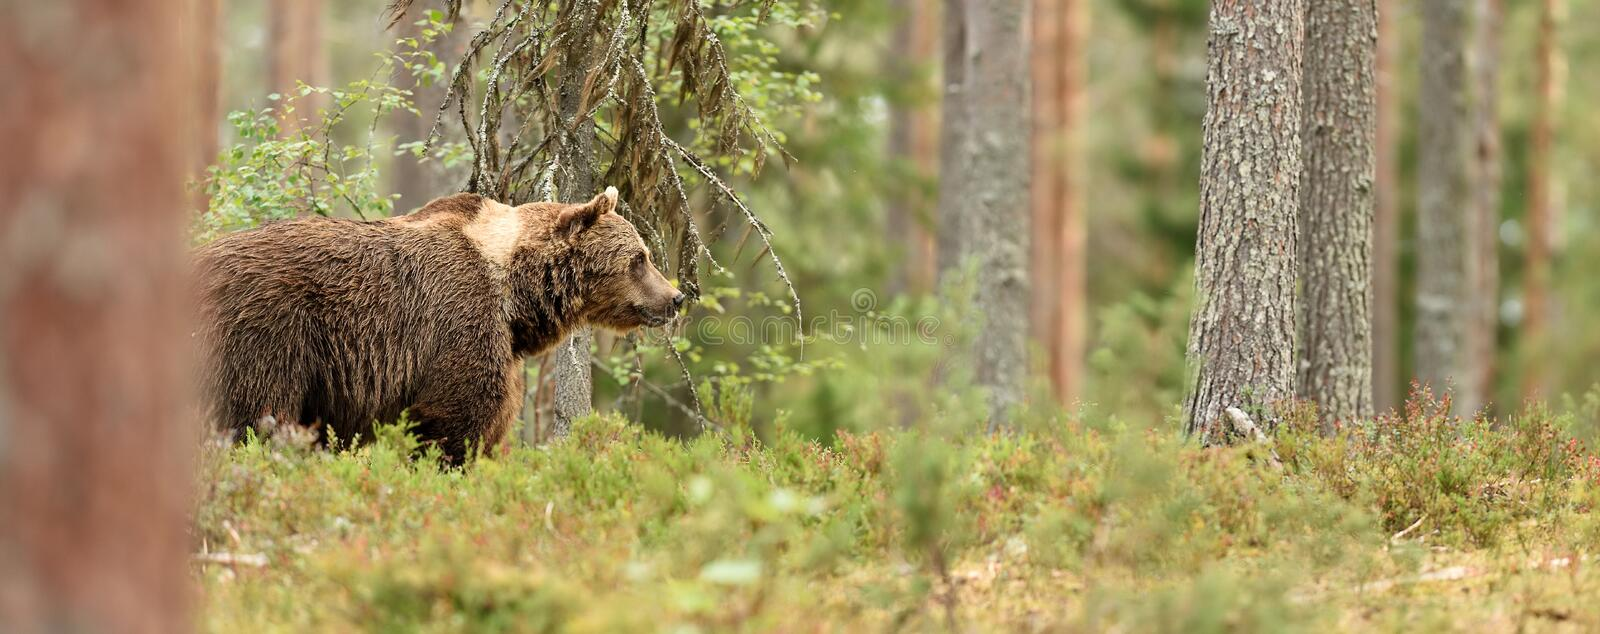 European Brown Bear Ursus arctos in the summer forest. Big male brown bear in natural habitat stock image